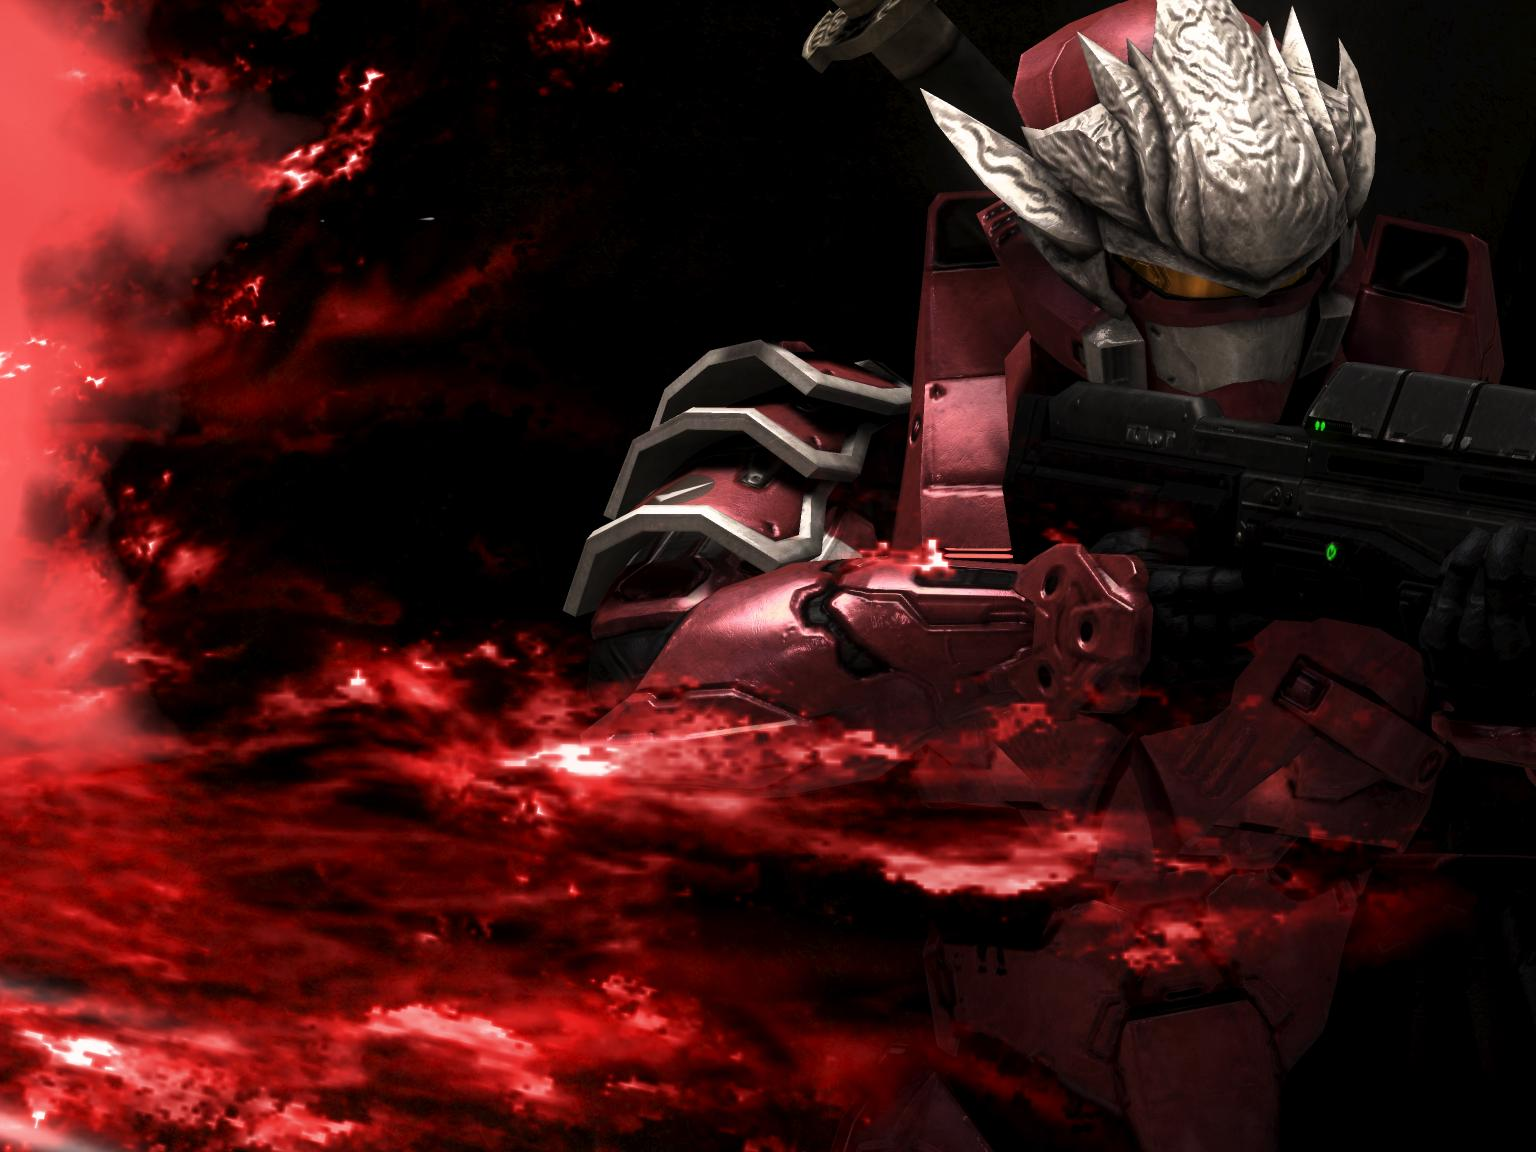 Sick Iphone Wallpapers Hd Halo Fondo De Pantalla And Fondo De Escritorio 1536x1152